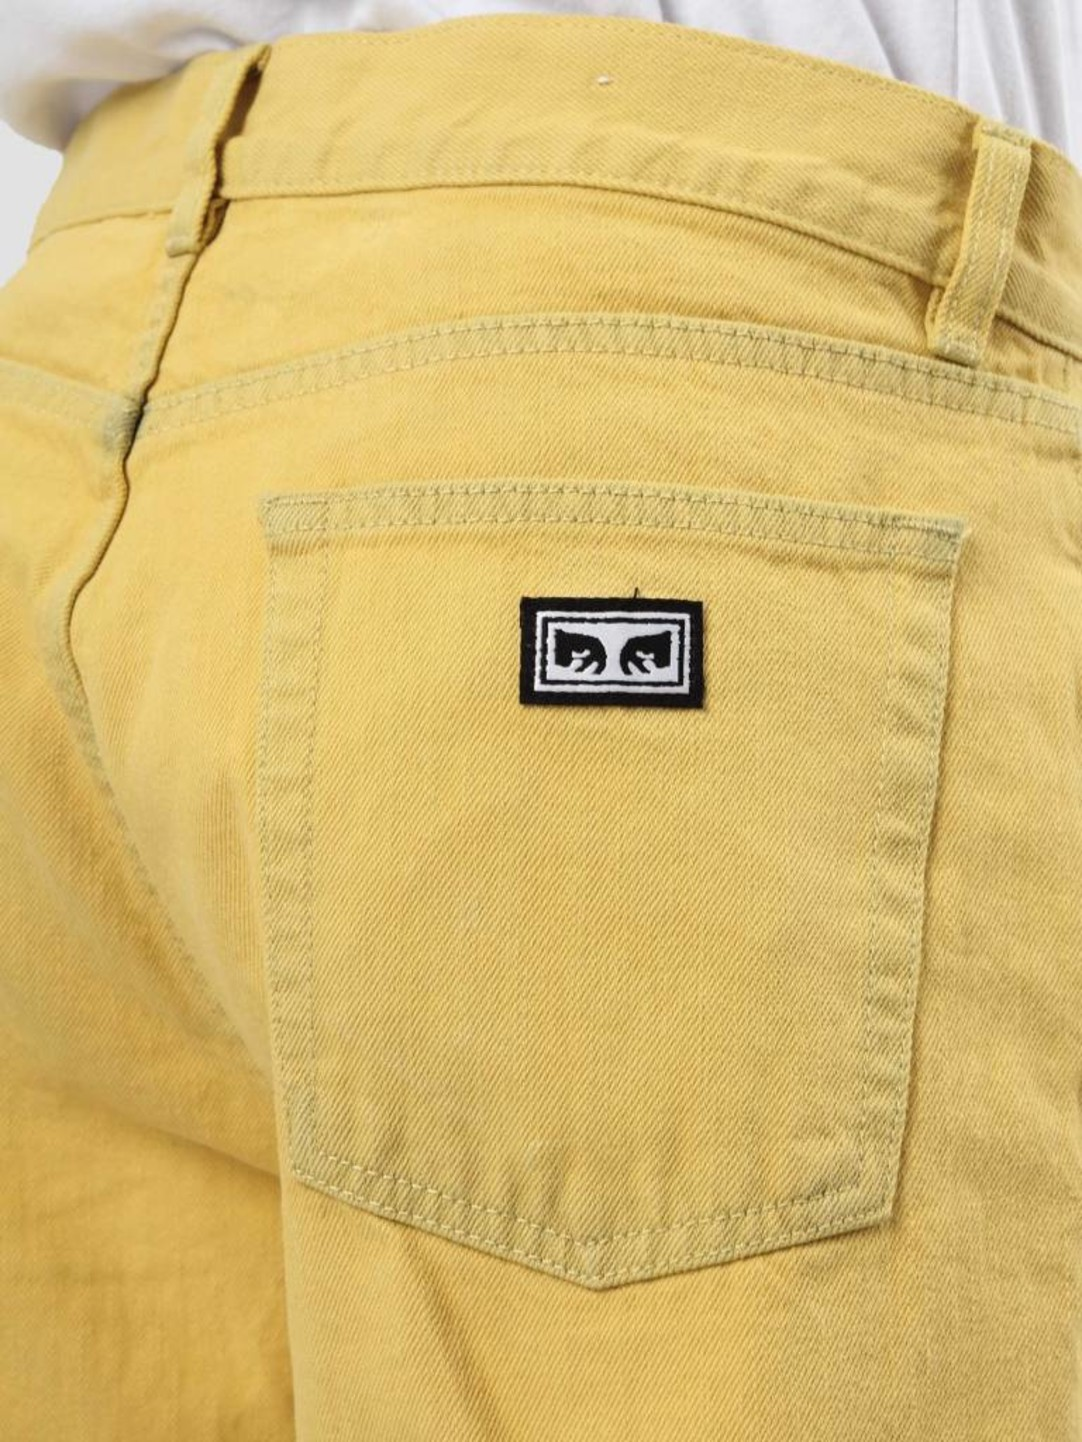 Obey Obey Blender Overdyed Denim Yellow 142010061